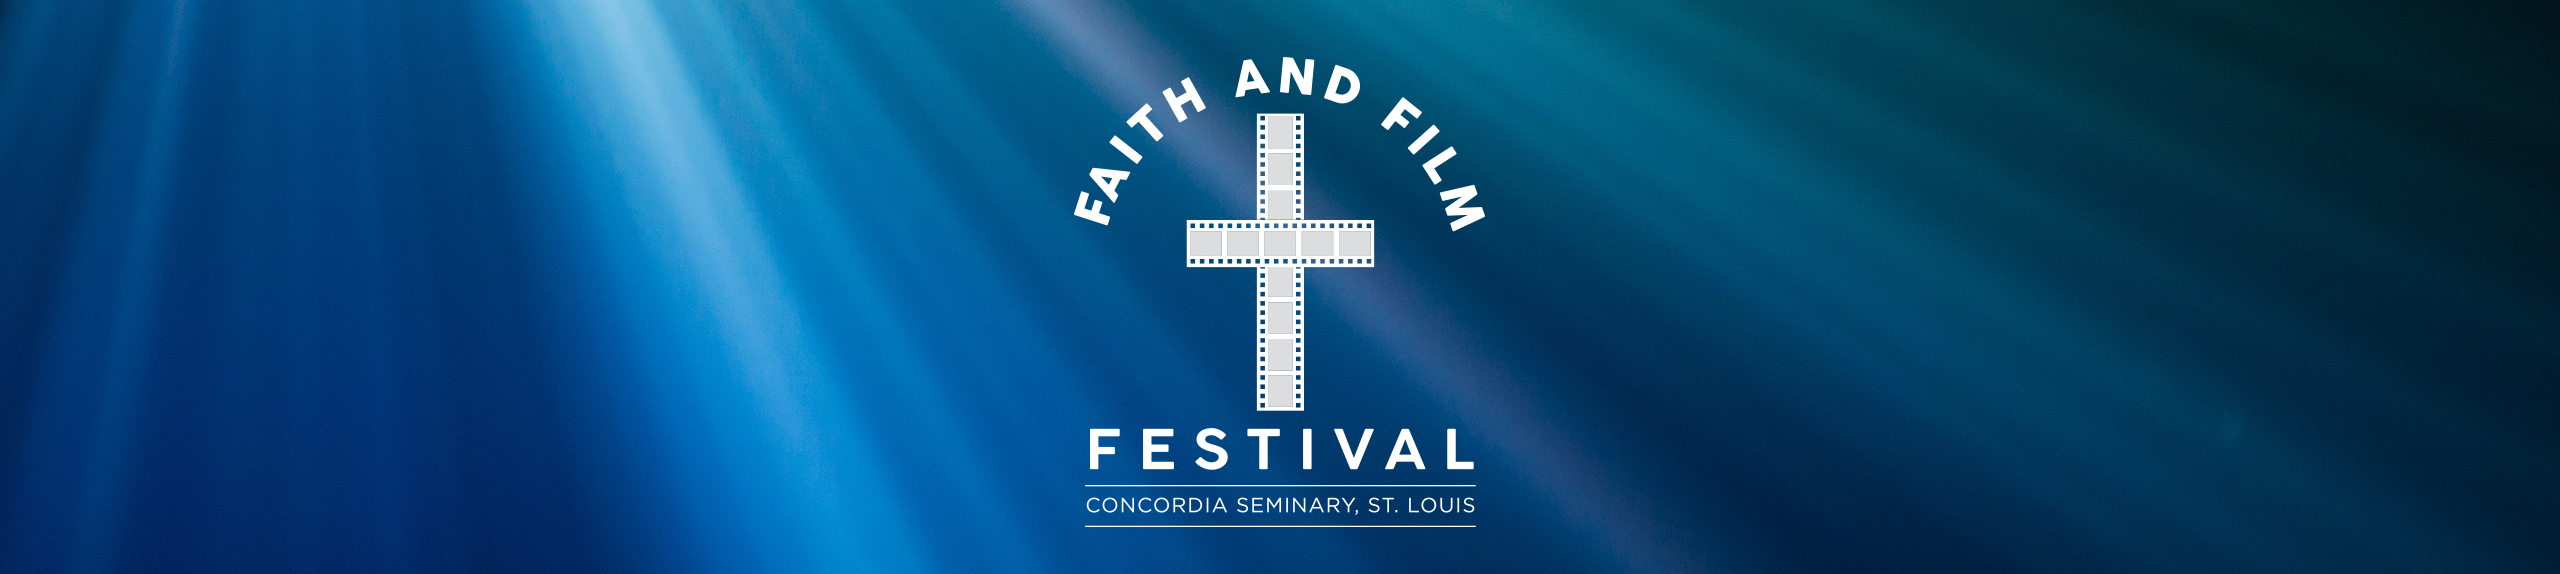 Faith and Film Festival header